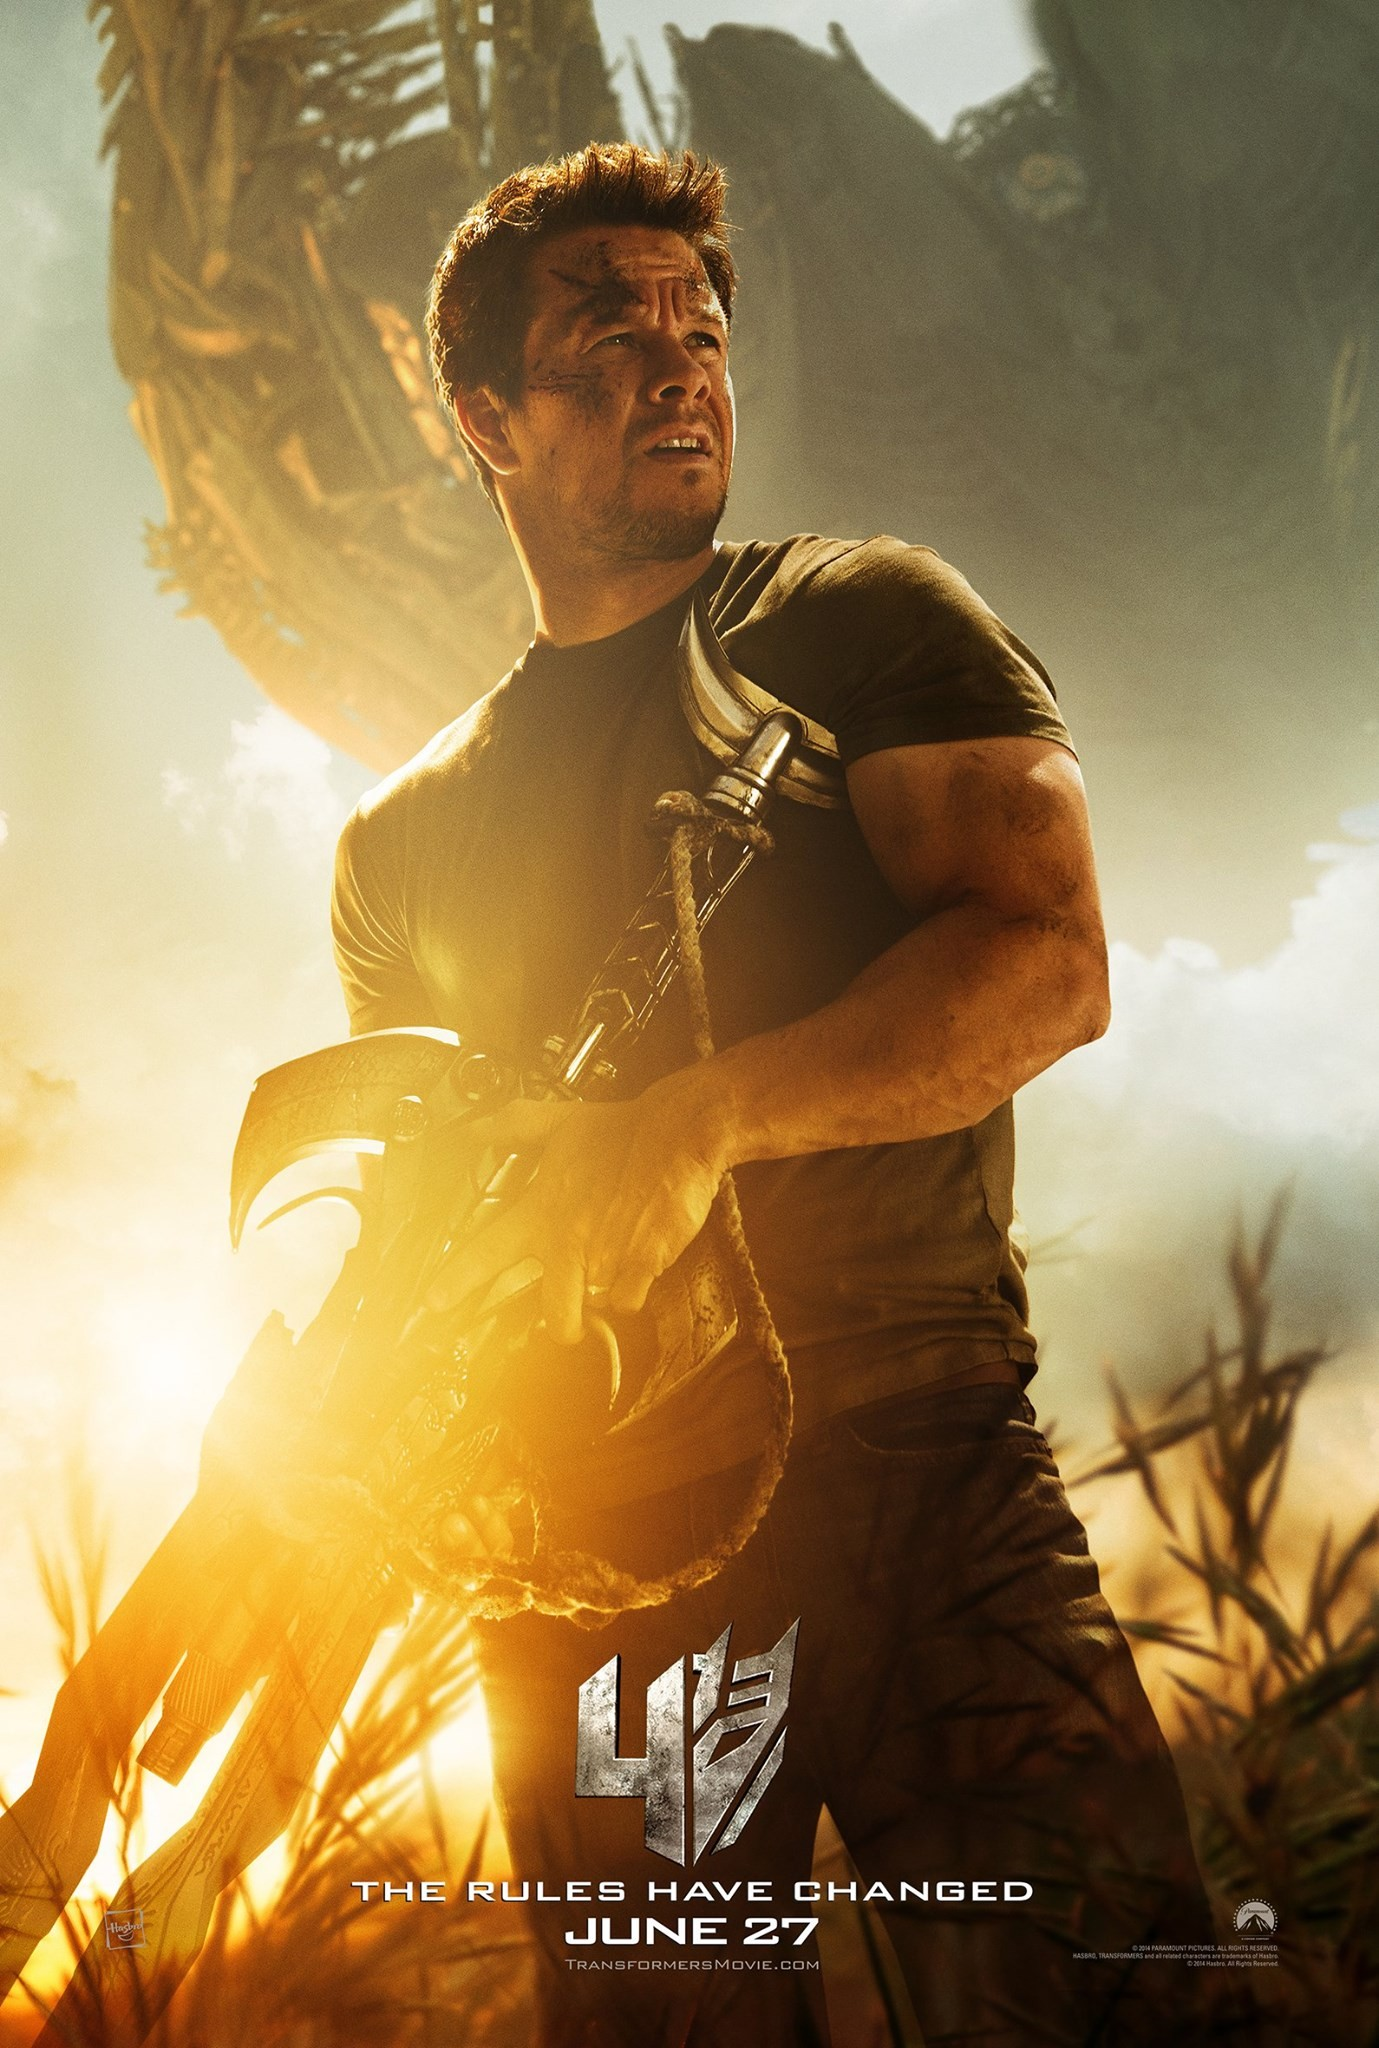 Transformers Age of Extinction-Official Poster Banner PROMO XXLG-05MARÇO2014-01